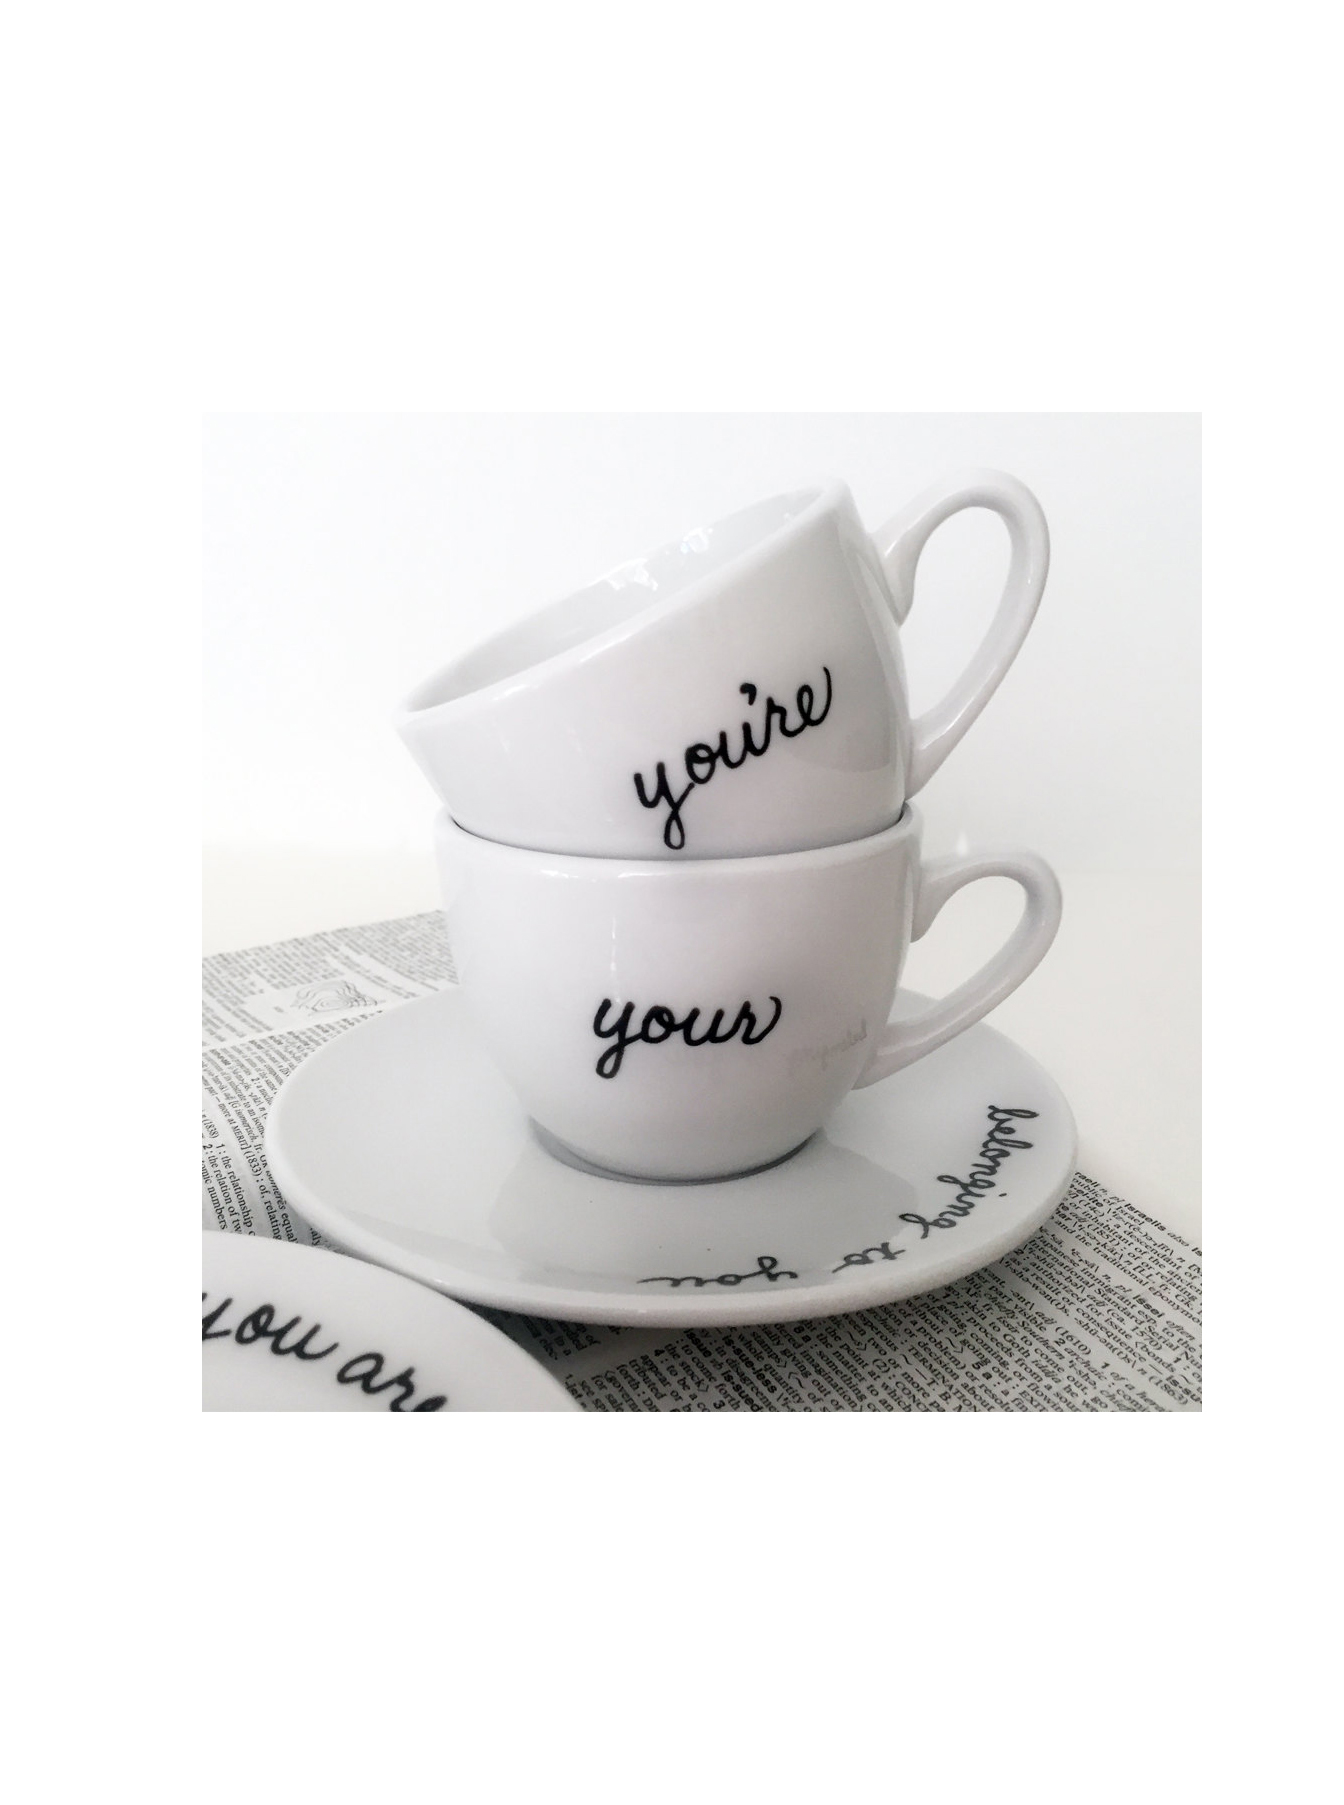 Grammar Teacup and Saucer (Set of 2)